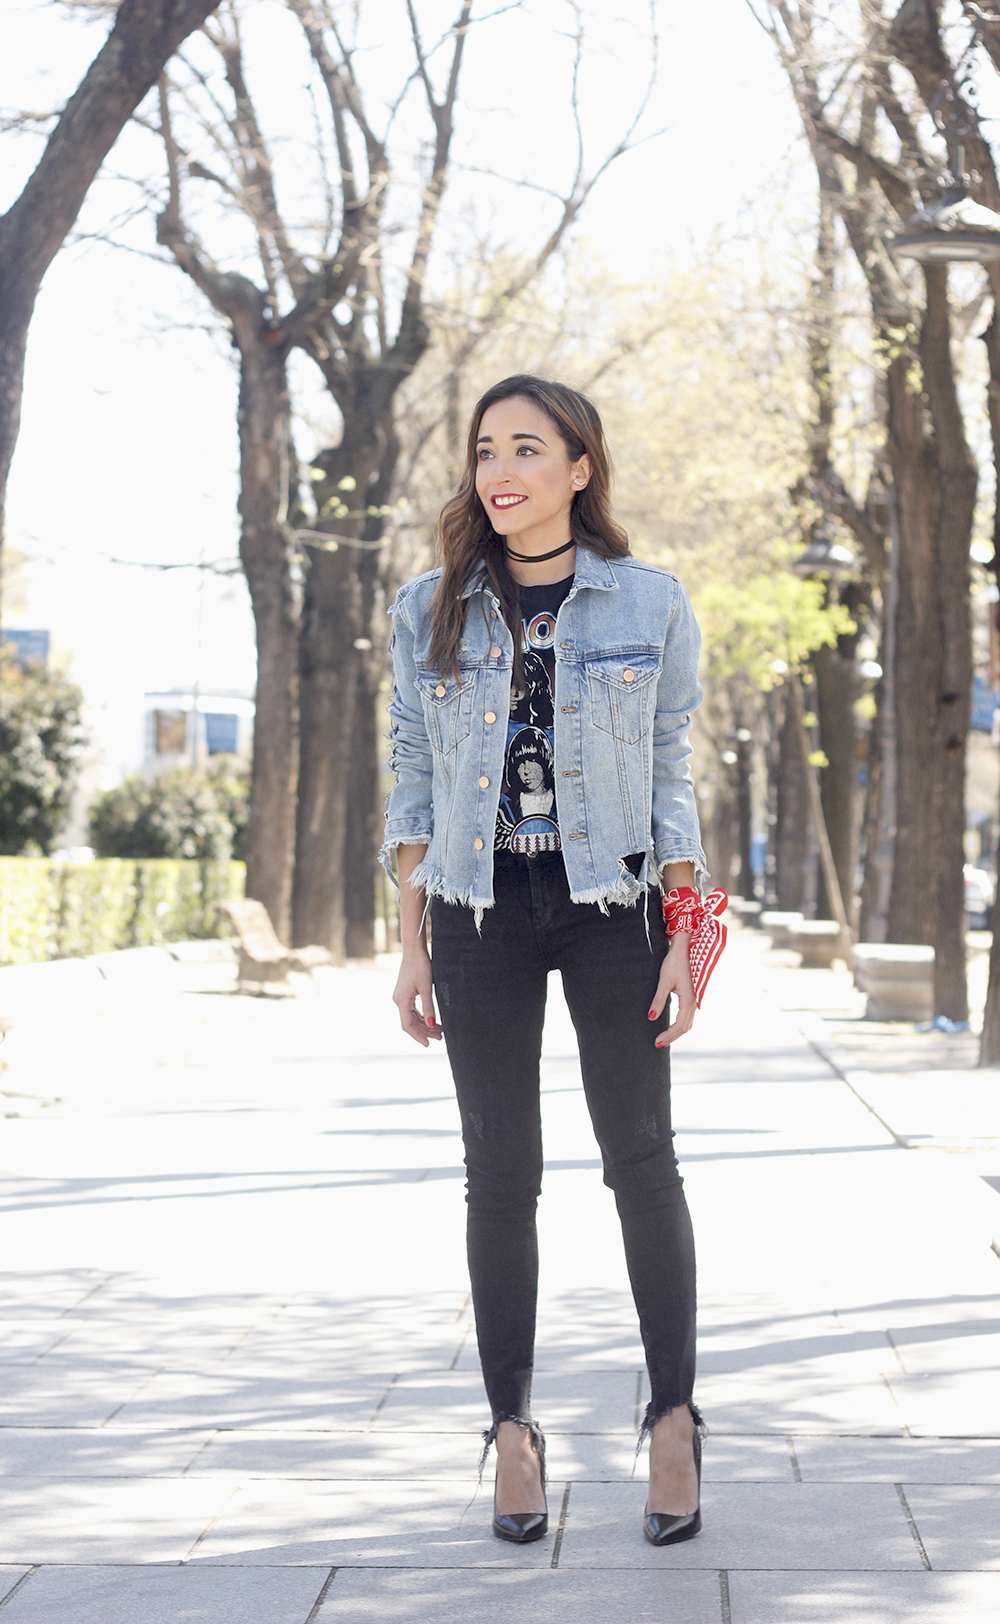 Ripped denim jacket black jeans ramones t-shirt heels style outfit fashion05